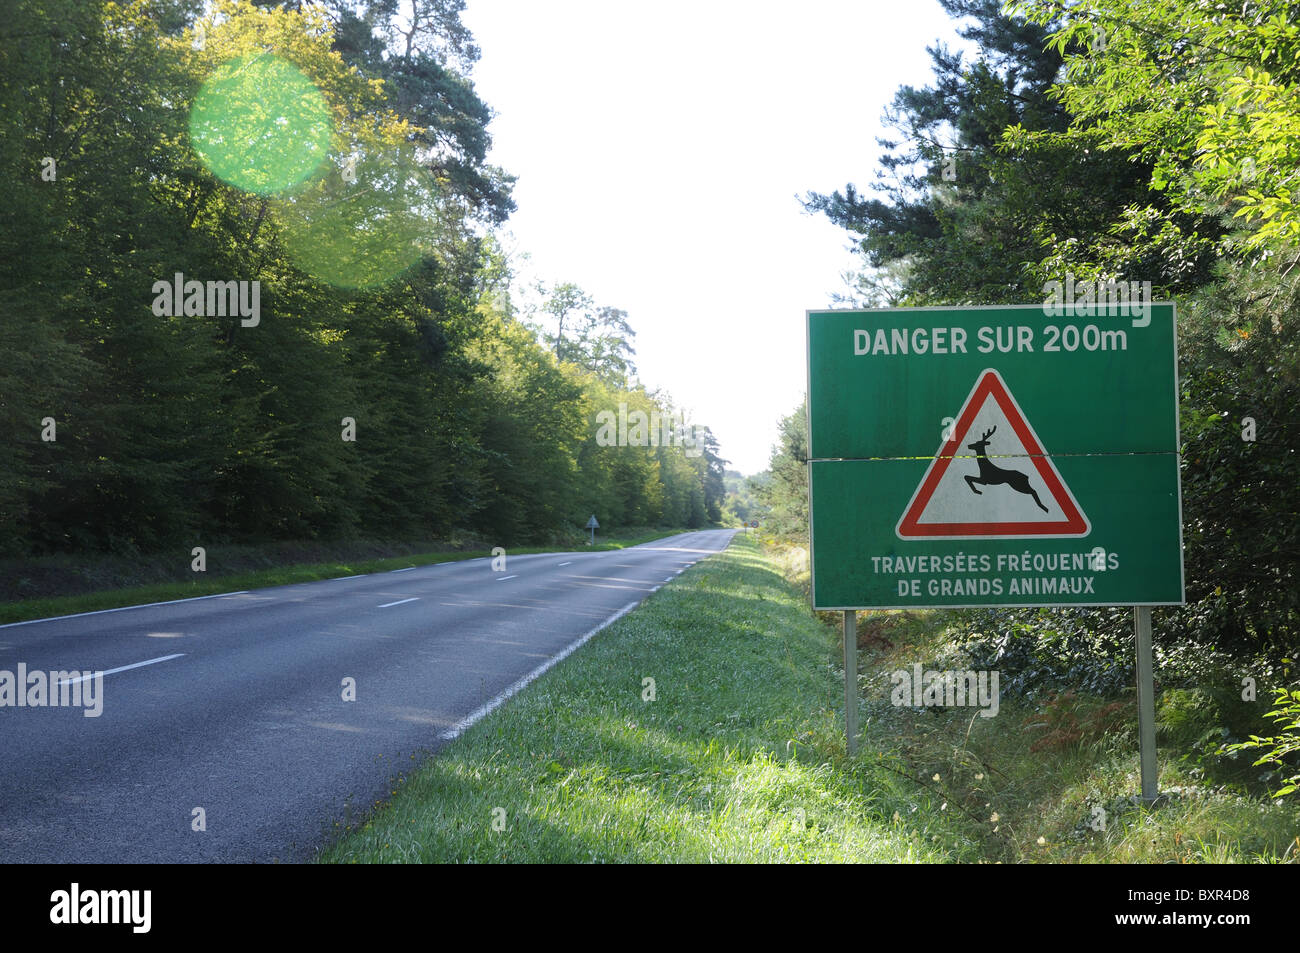 Sign warning of danger for 200 metres because of frequent crossings by deer and large animals on D332 through Compiegne - Stock Image